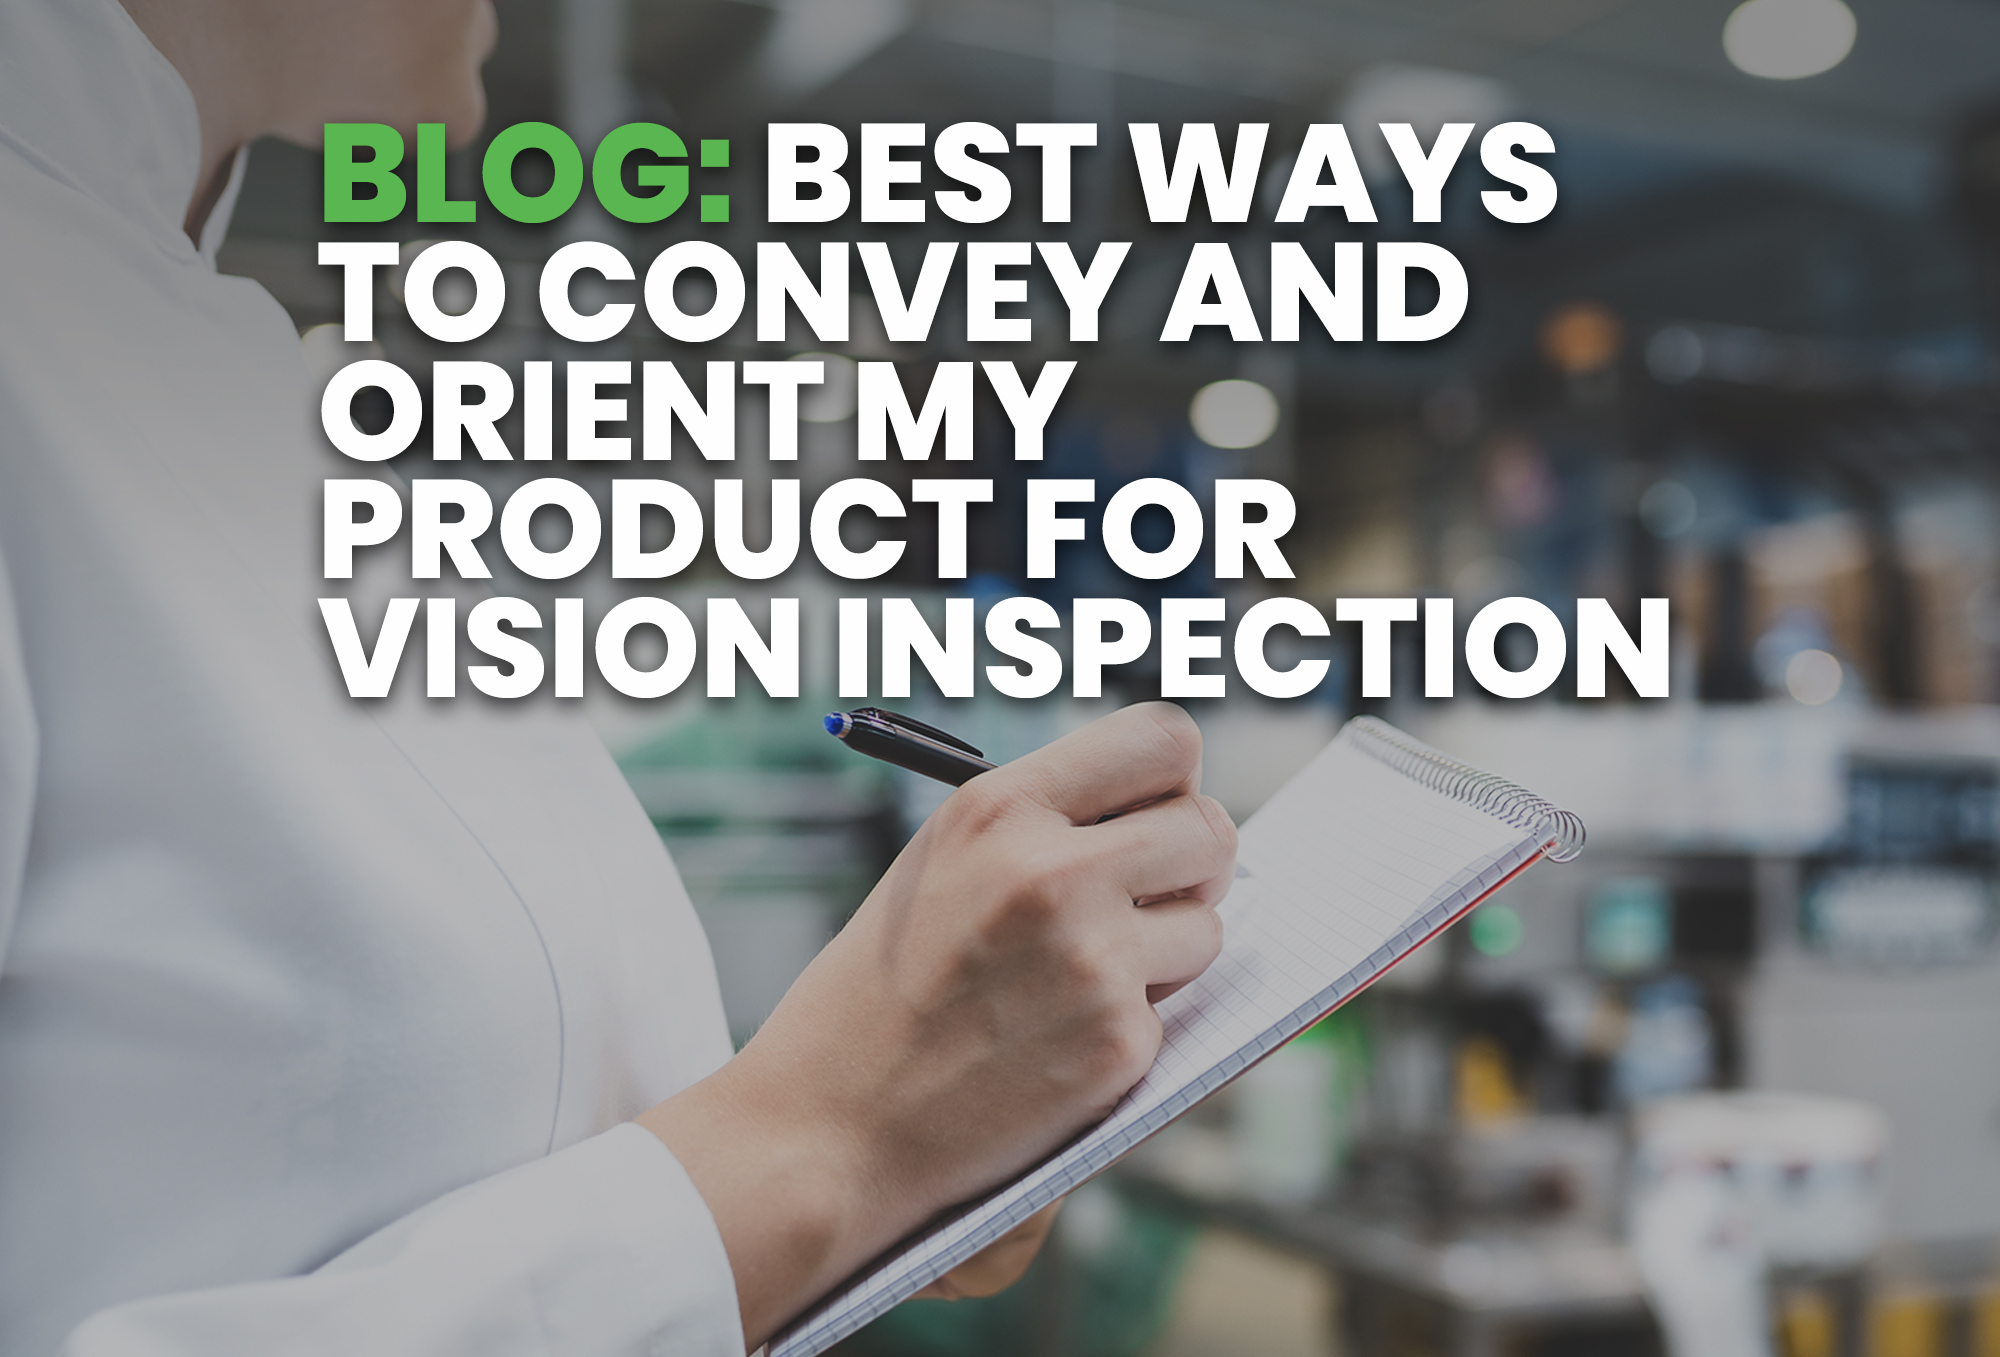 BLOG- Best Ways To Convey and Orient My Product For Vision Inspection